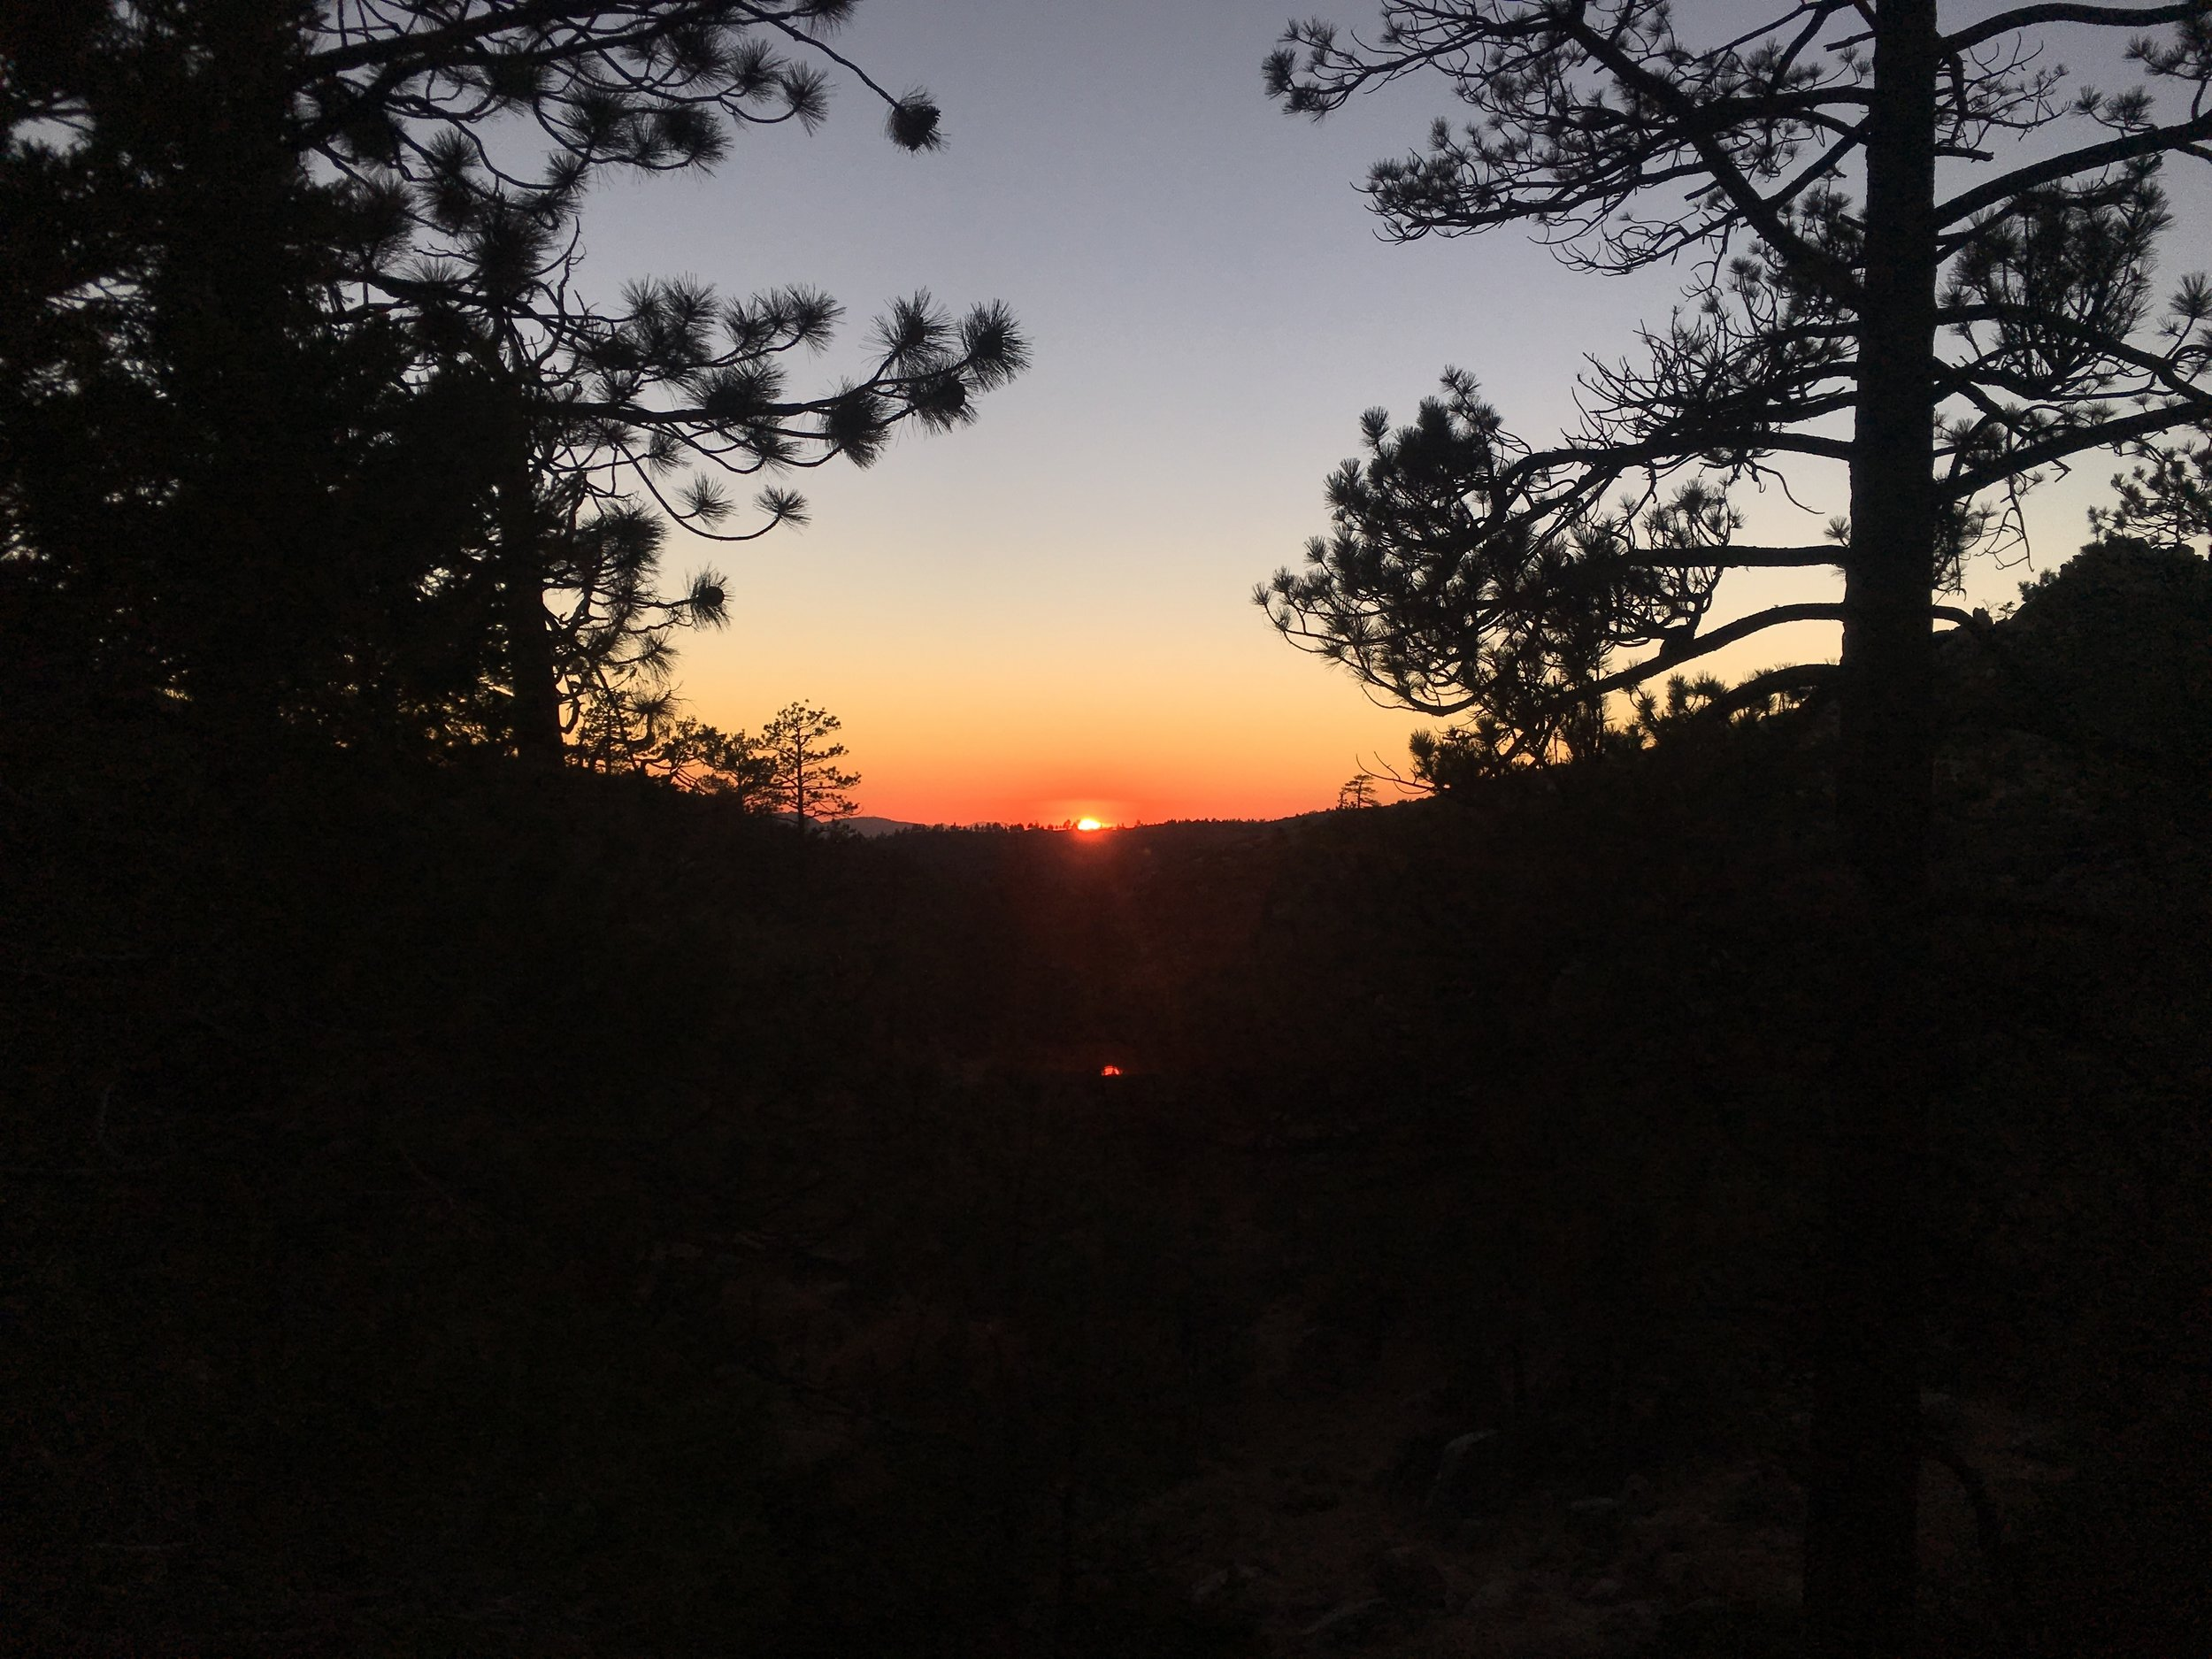 Sunset over the Angeles Crest.